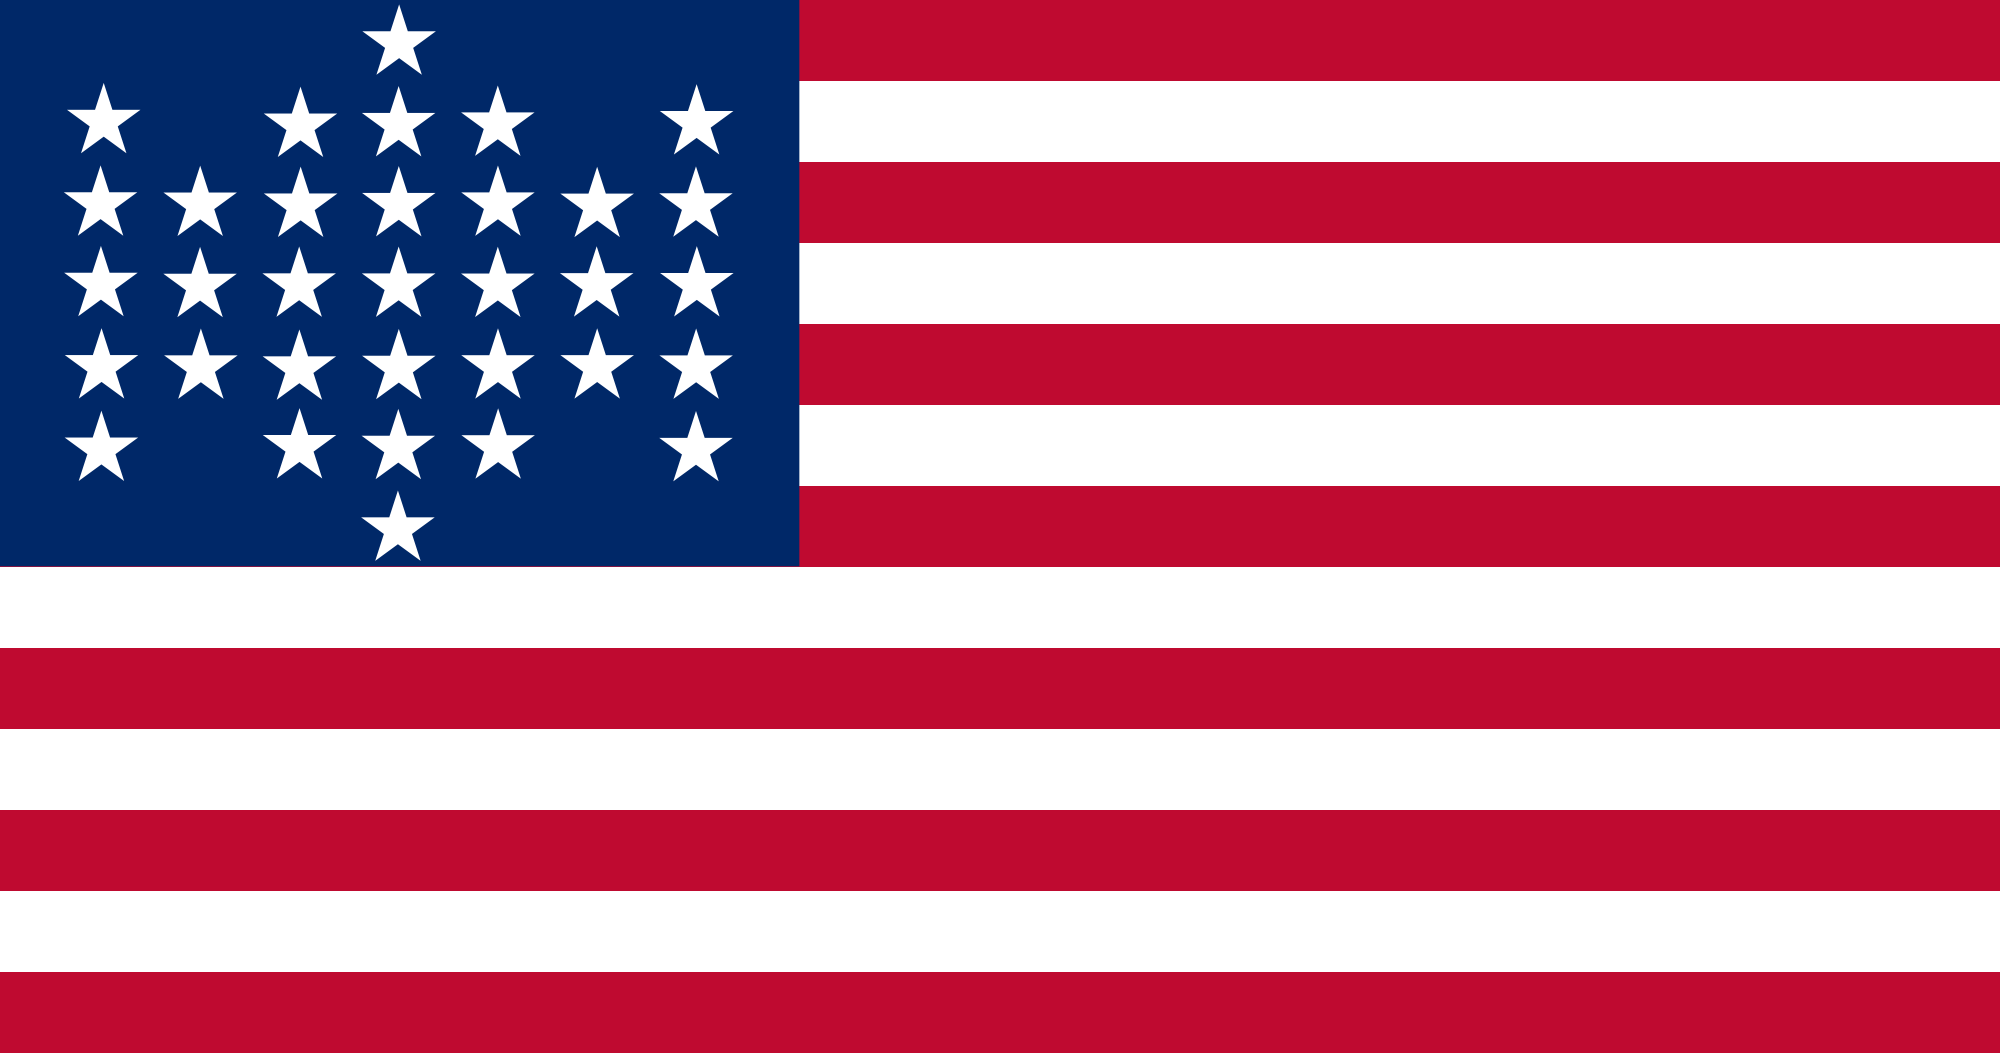 What does the american flag look like